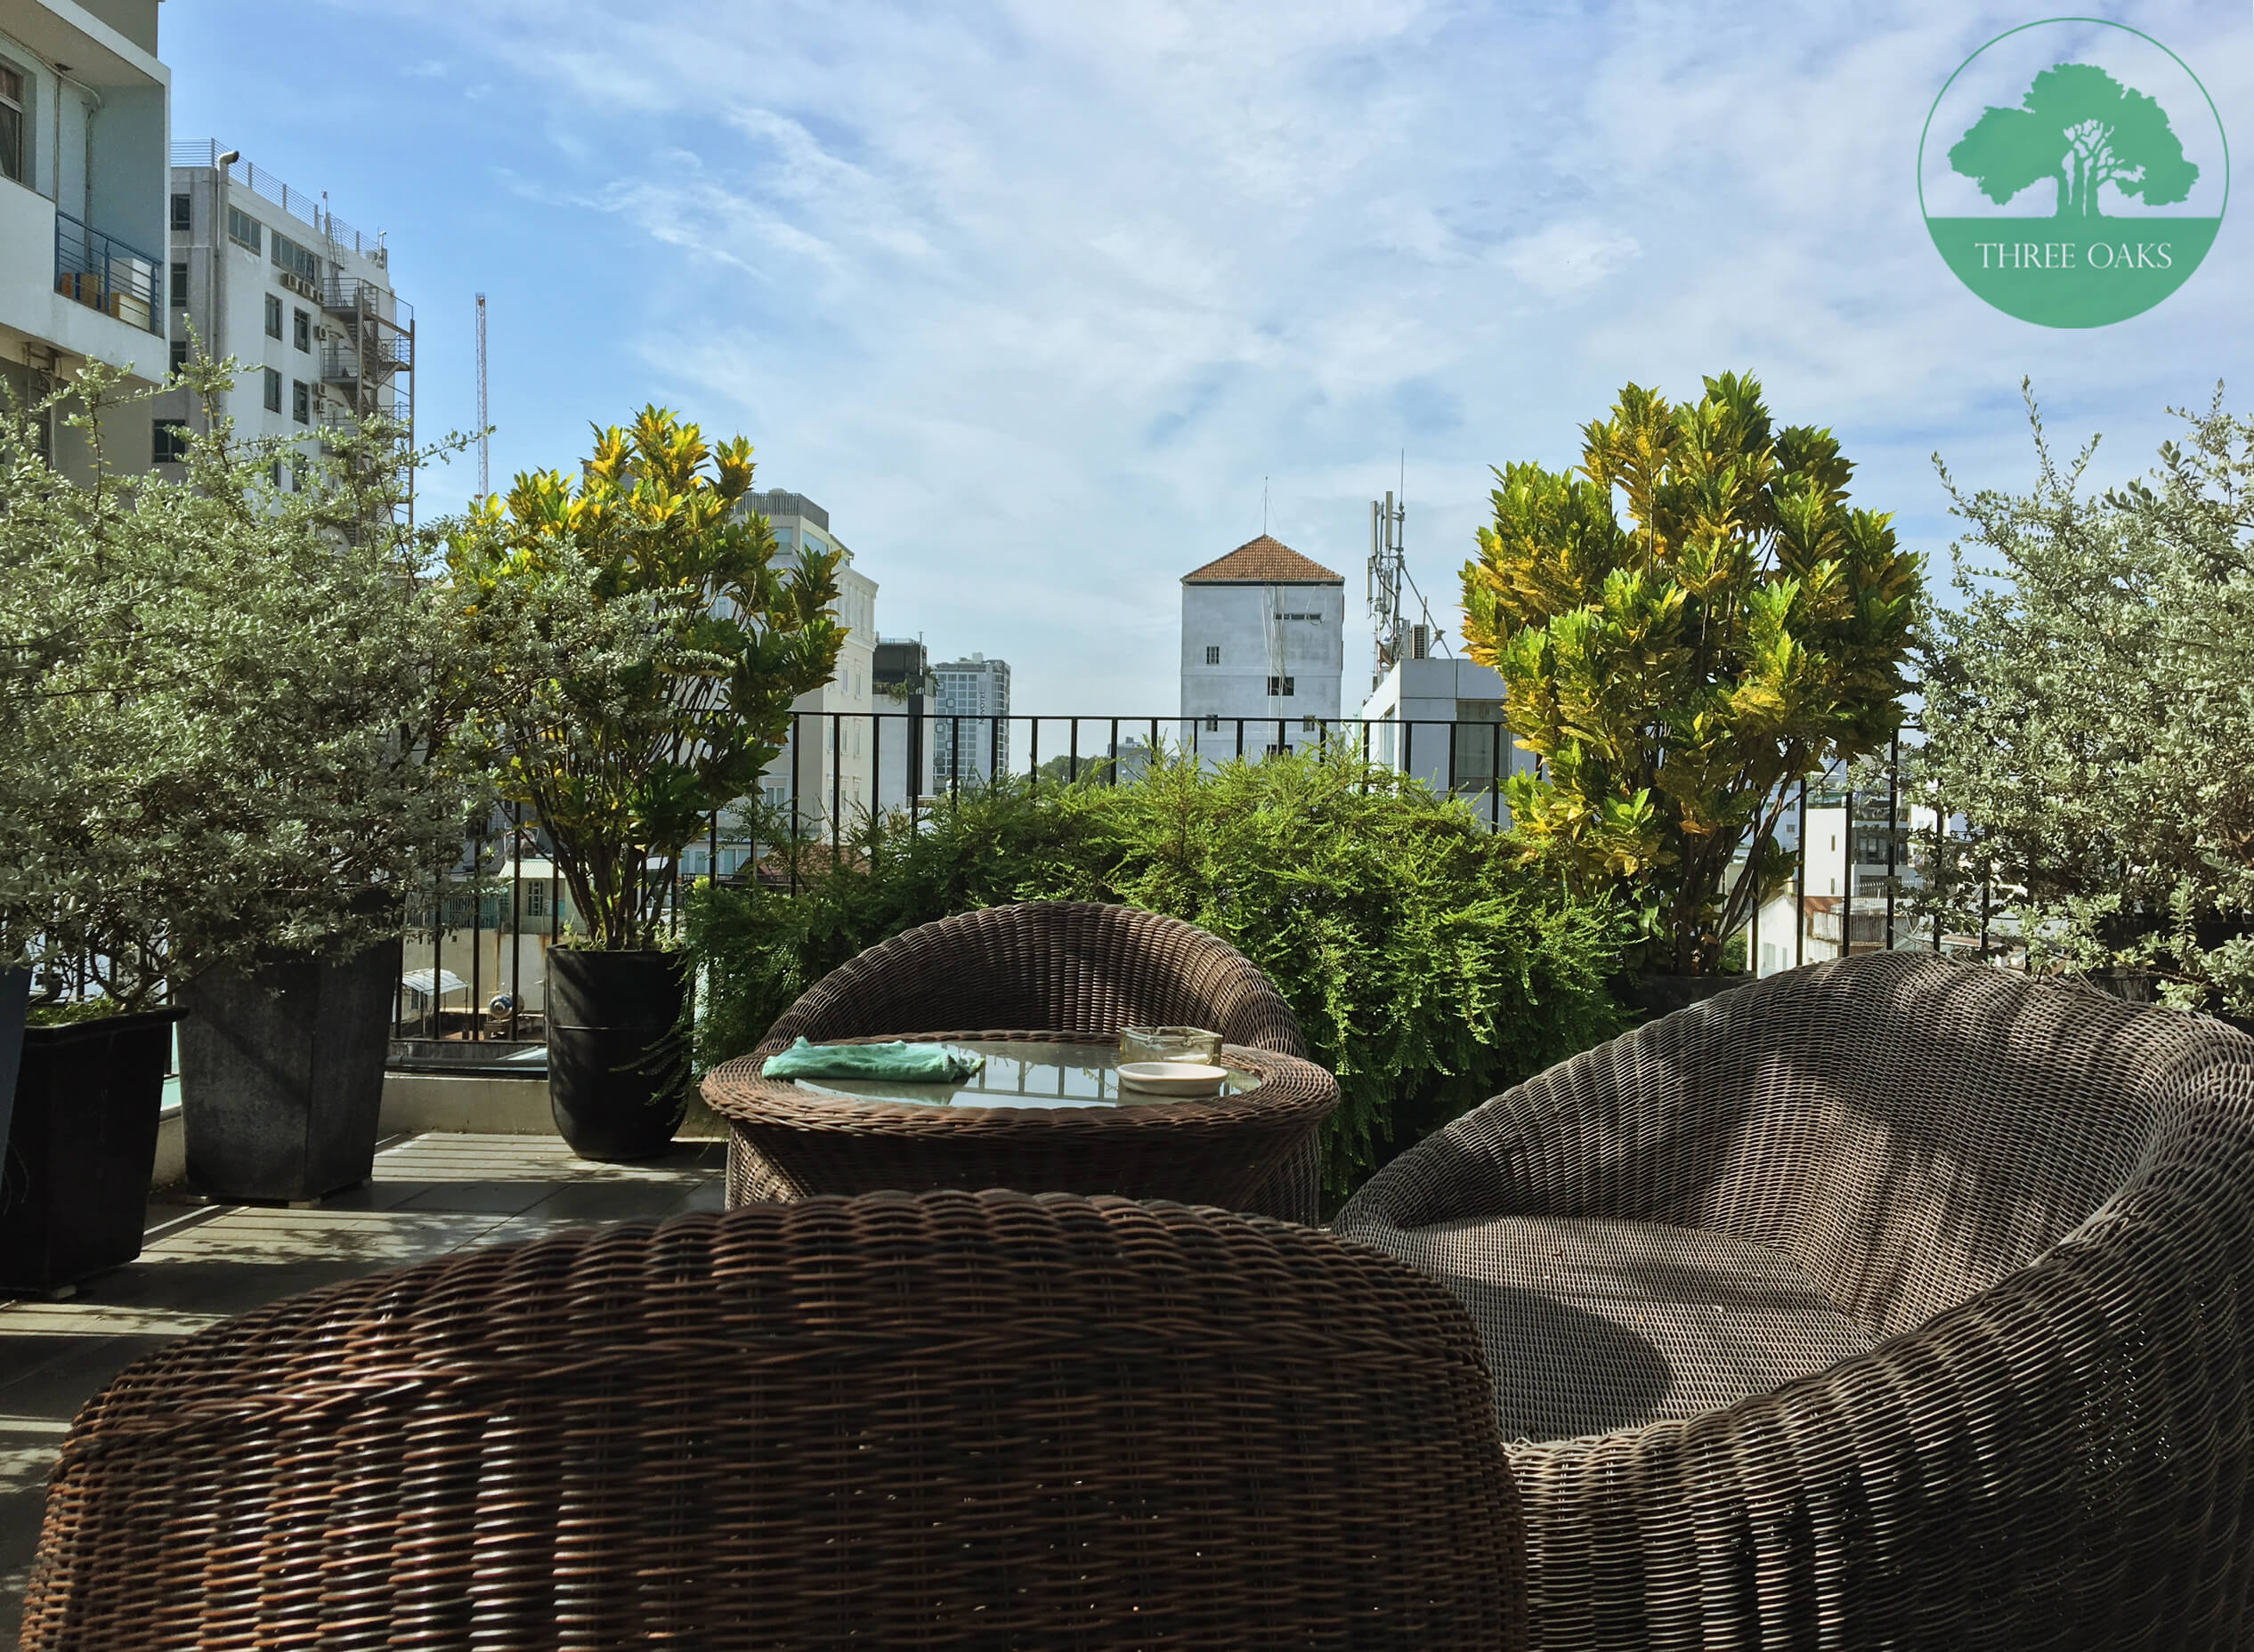 serviced-apartment-in-hcm-three-oaks-2-tybe-a-32